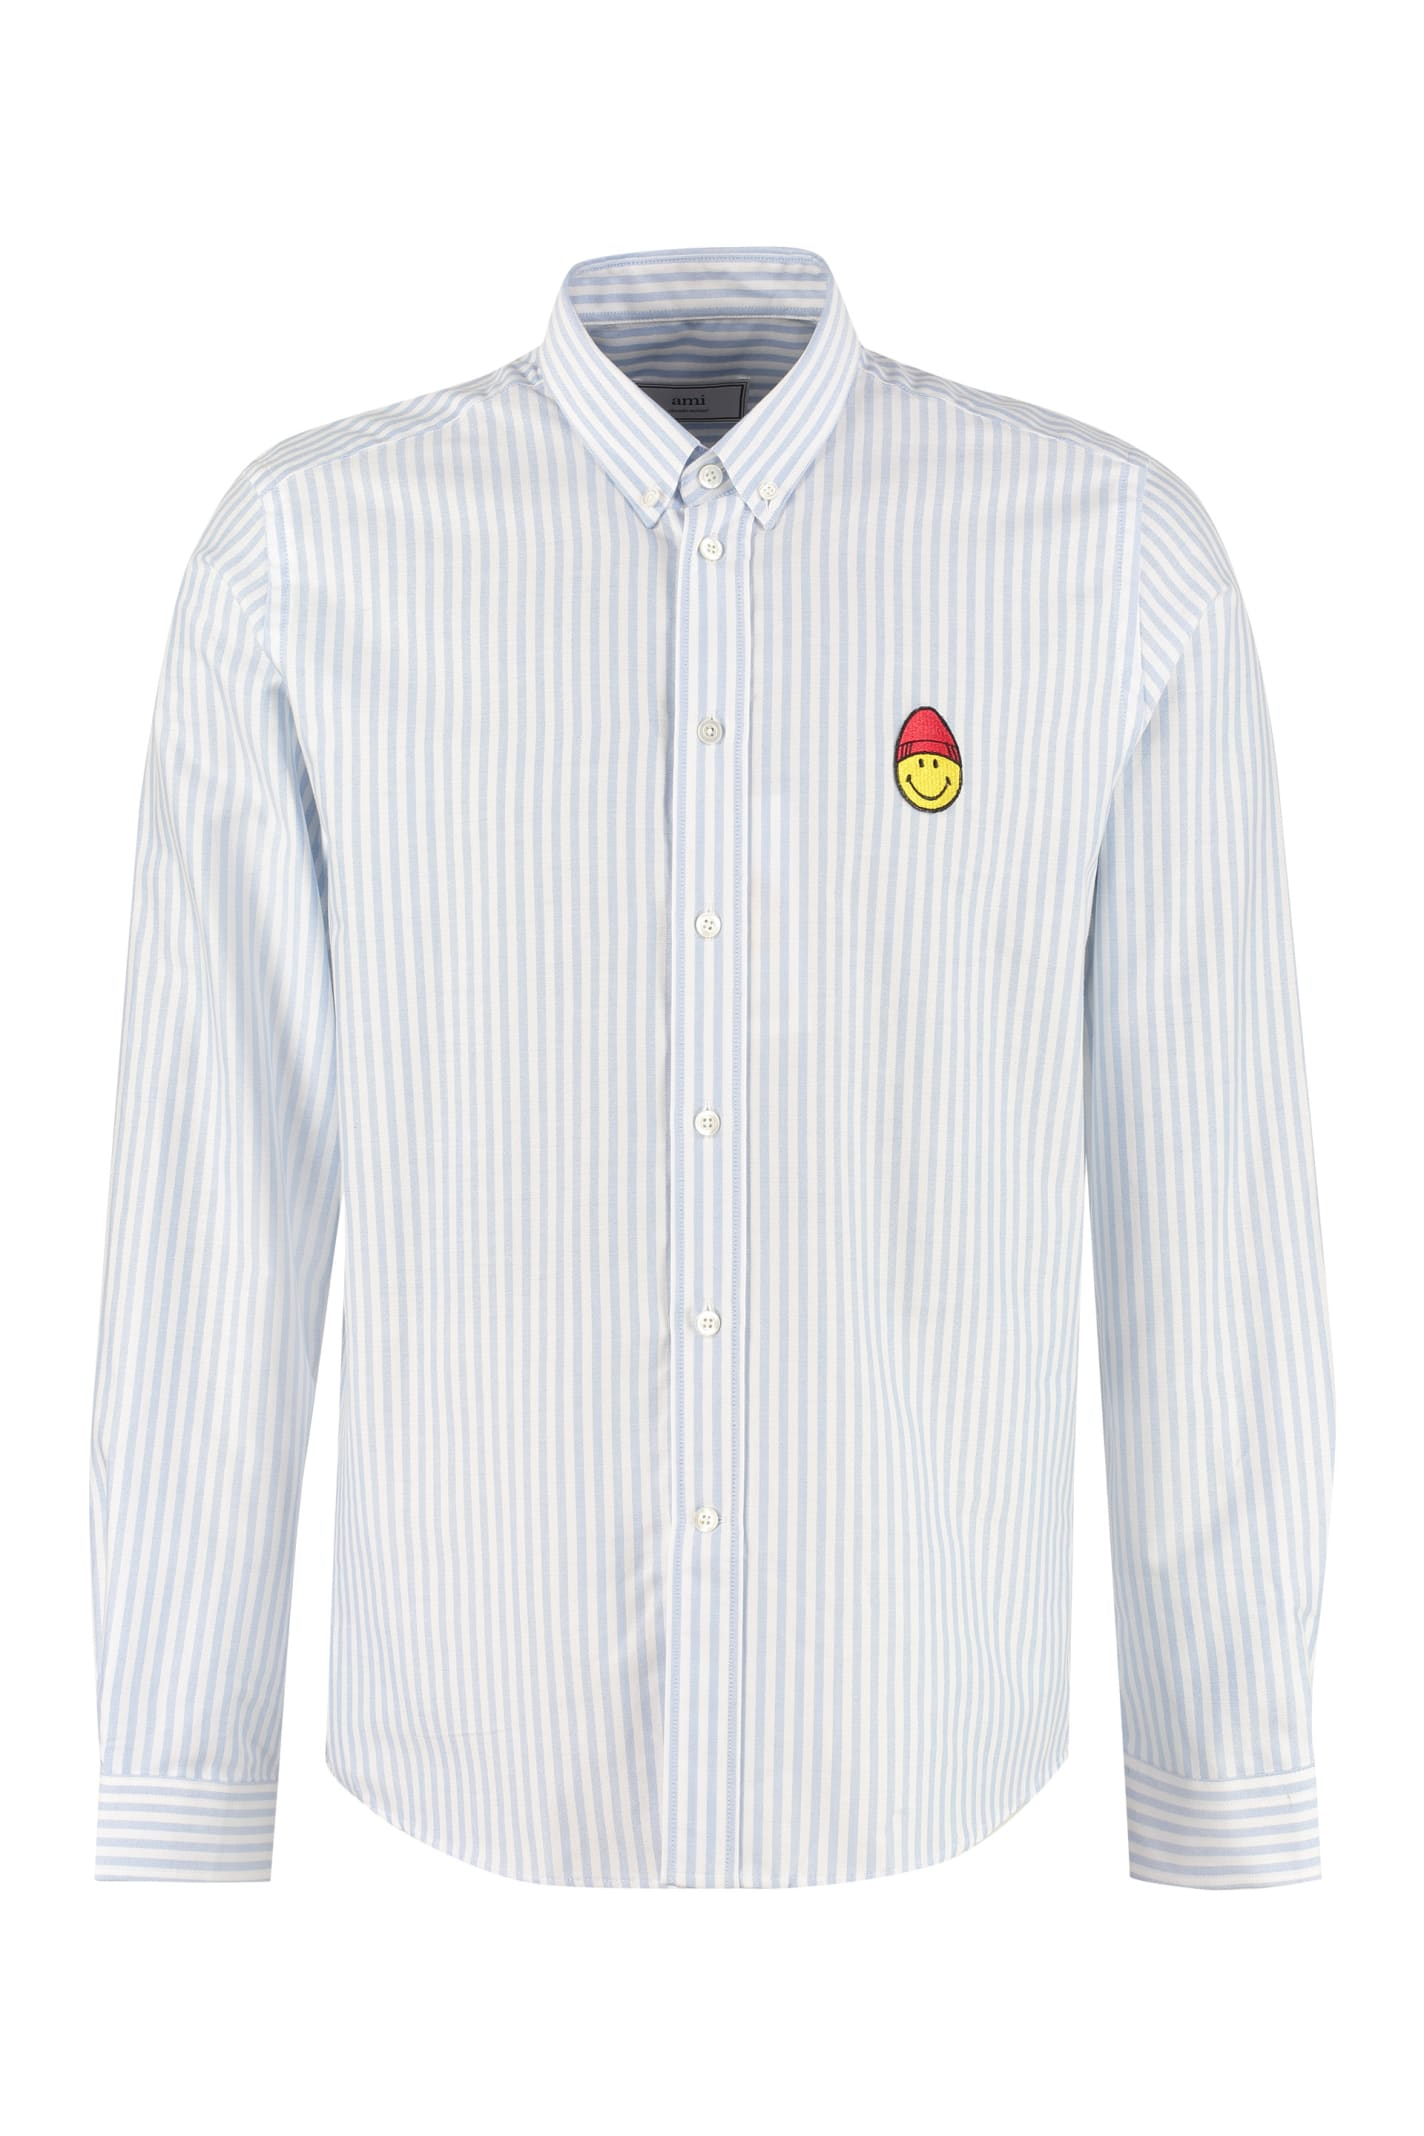 Ami Alexandre Mattiussi T-shirts STRIPED BUTTON-DOWN SHIRT